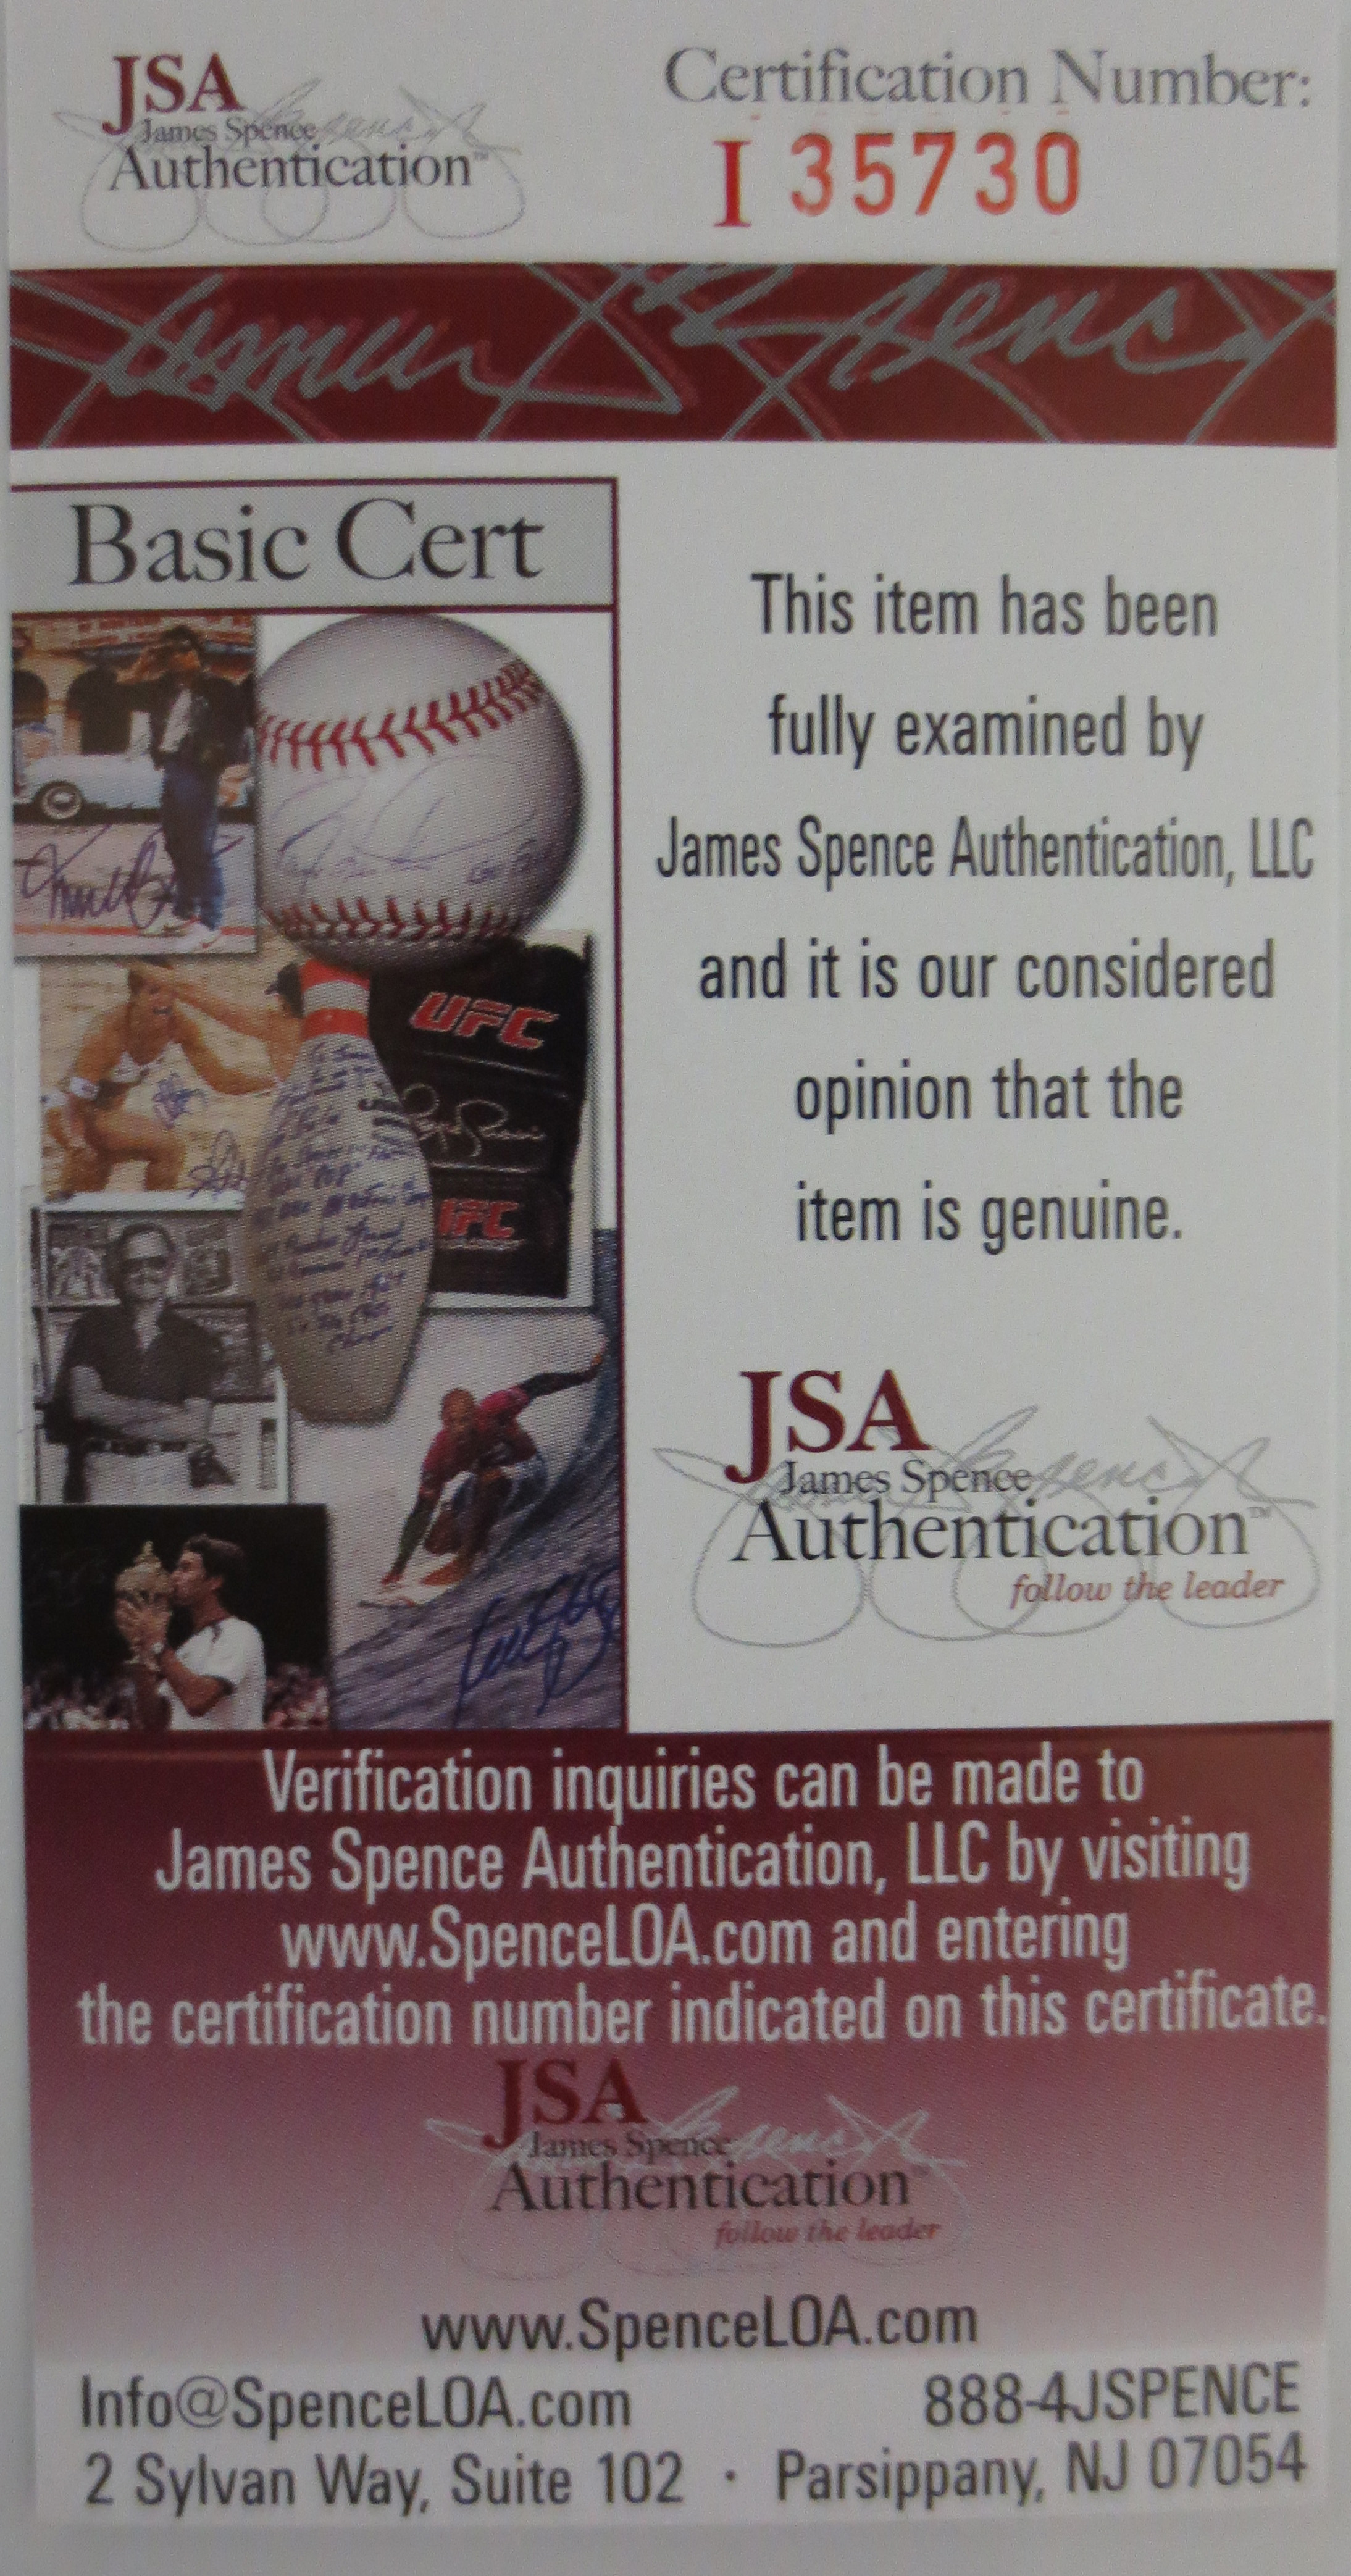 Powers Autographs proudly sells authentic autographed memorabilia from JSA.